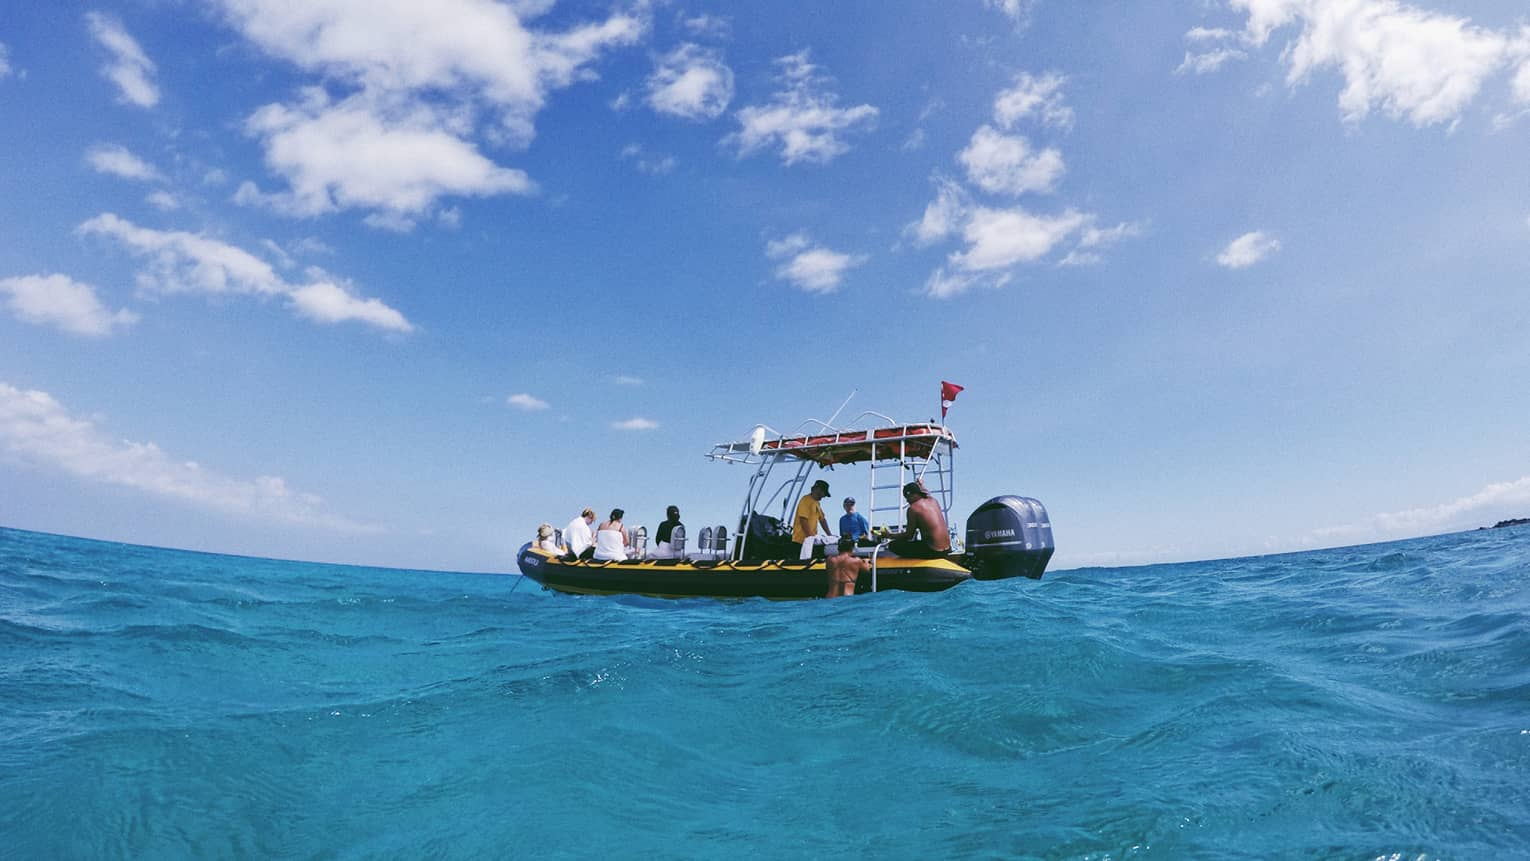 People sit on edge of small inflatable motor boat, prepare to snorkel